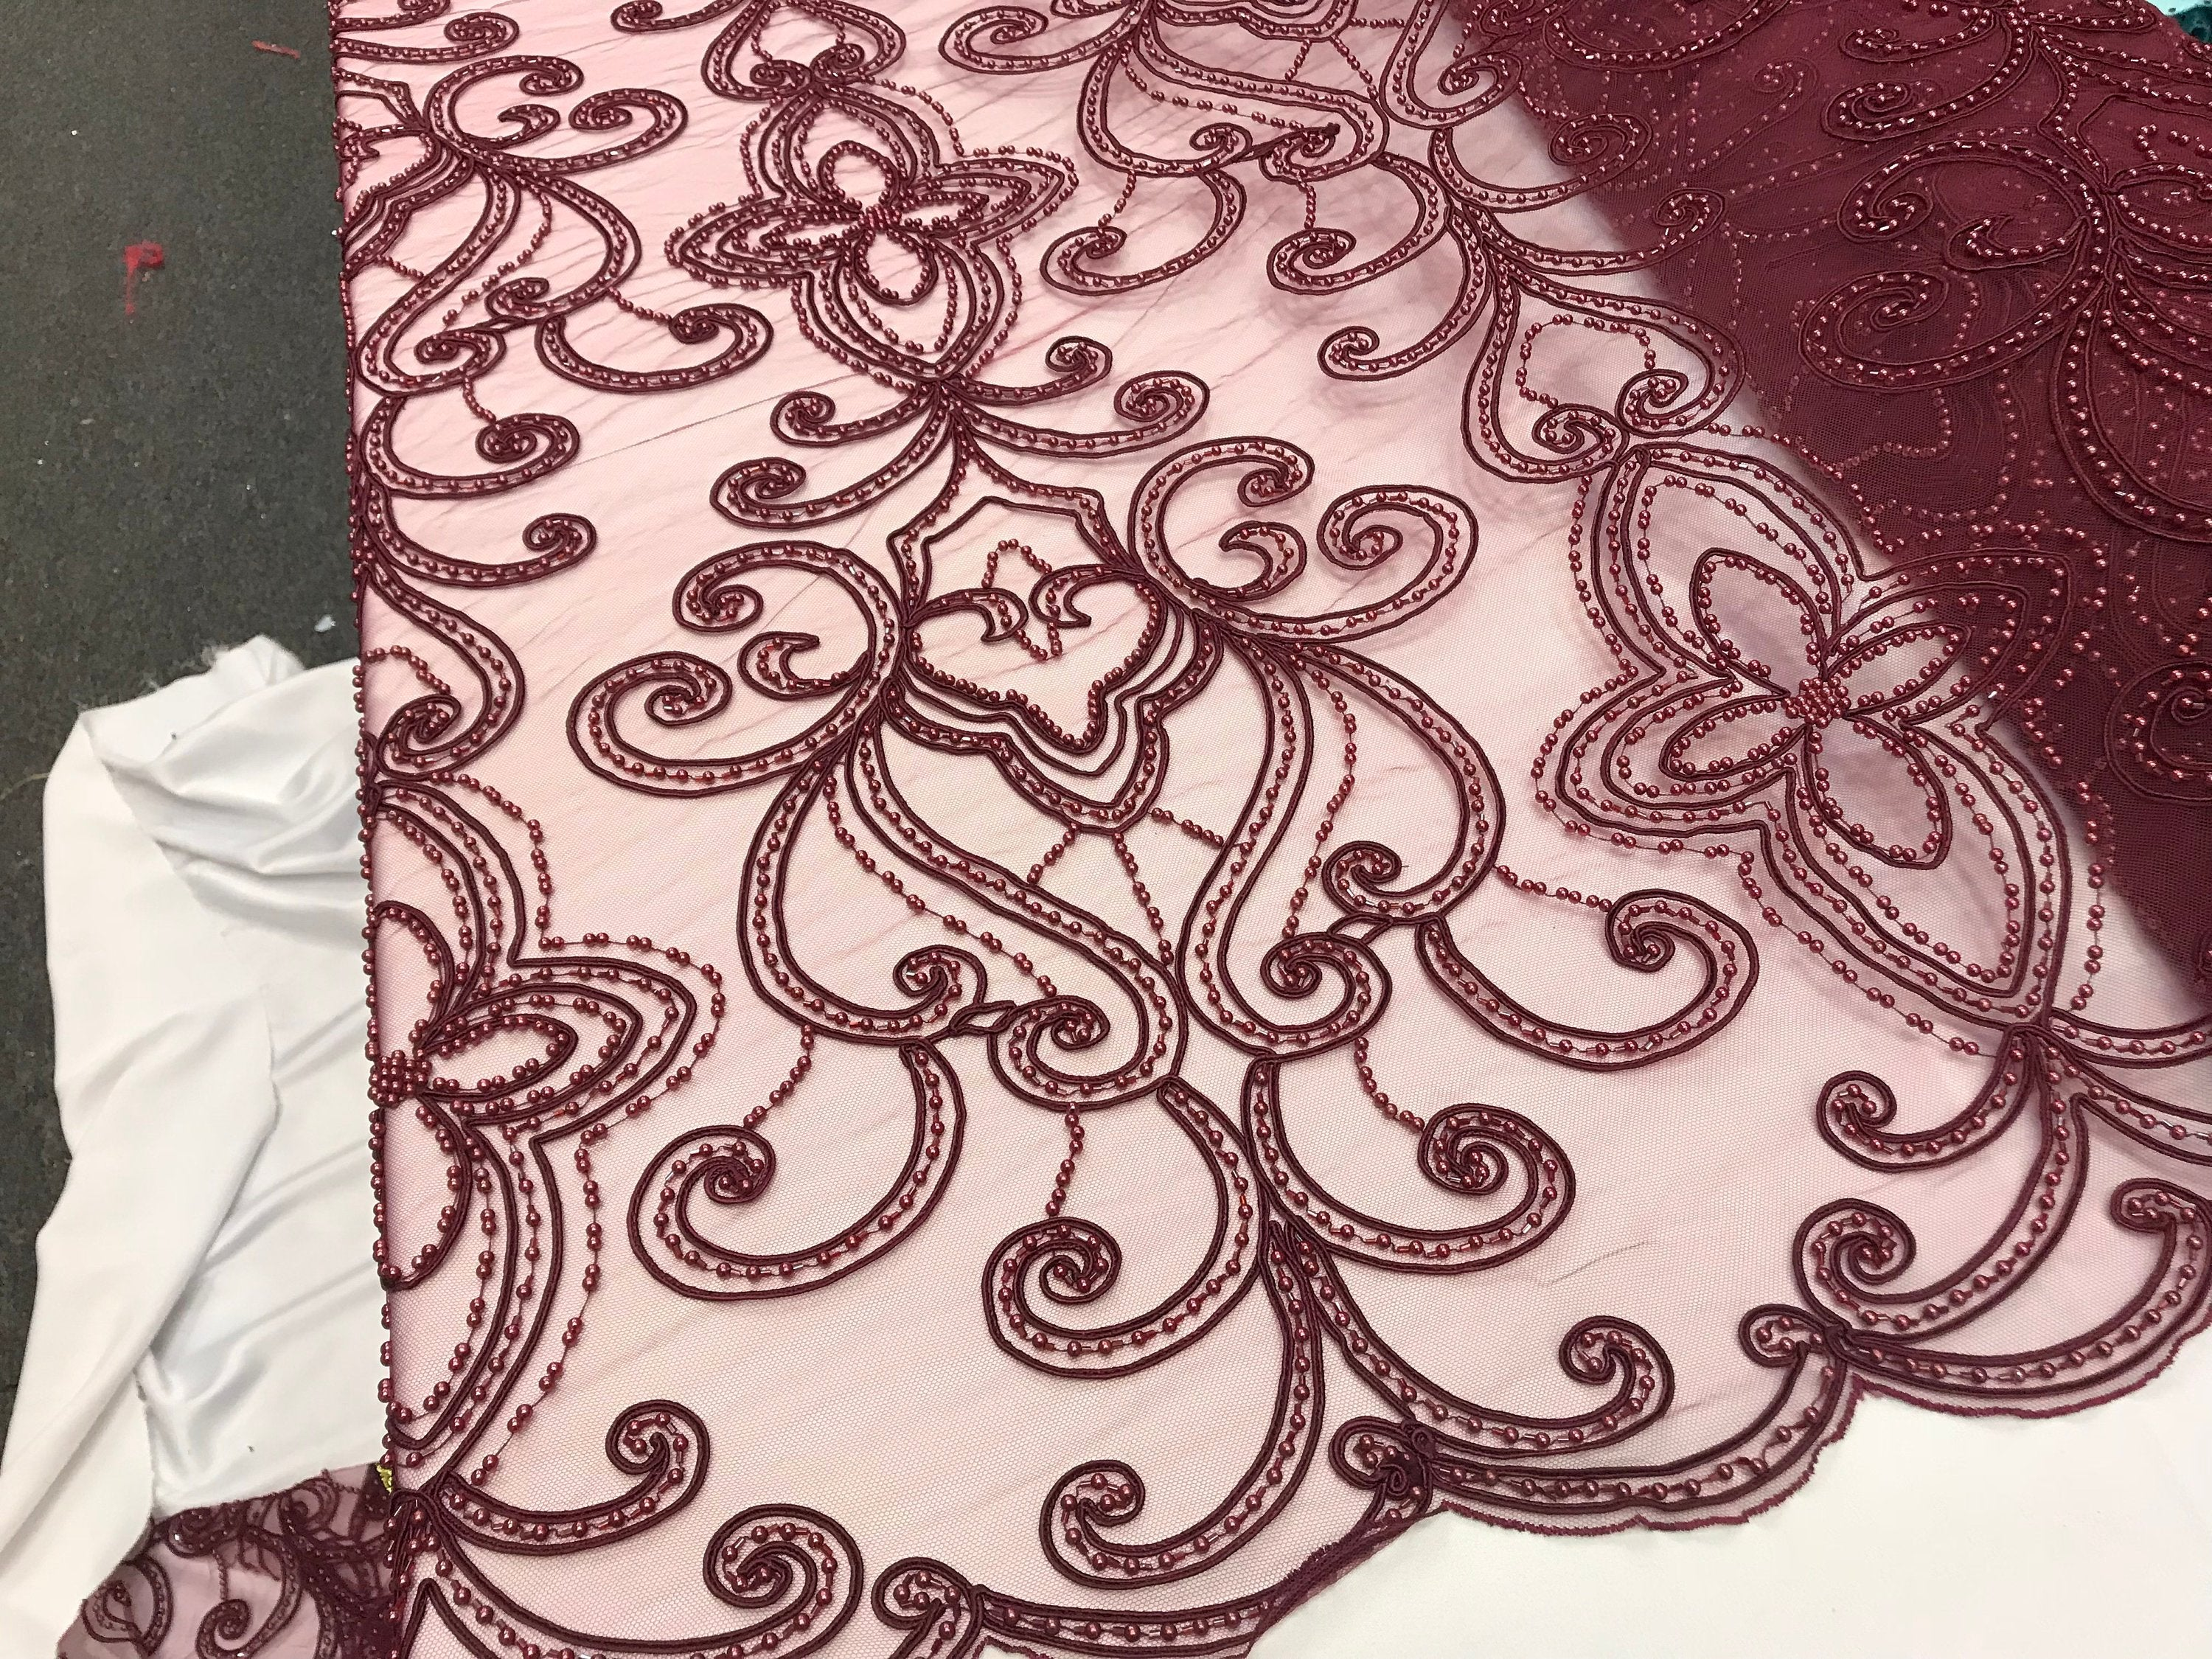 Burgundy Design Beaded Mesh Lace Fabric Bridal Wedding Sold By Yard clothing, jackets, dresses,skirts, applications, table covers runners - KINGDOM OF FABRICS